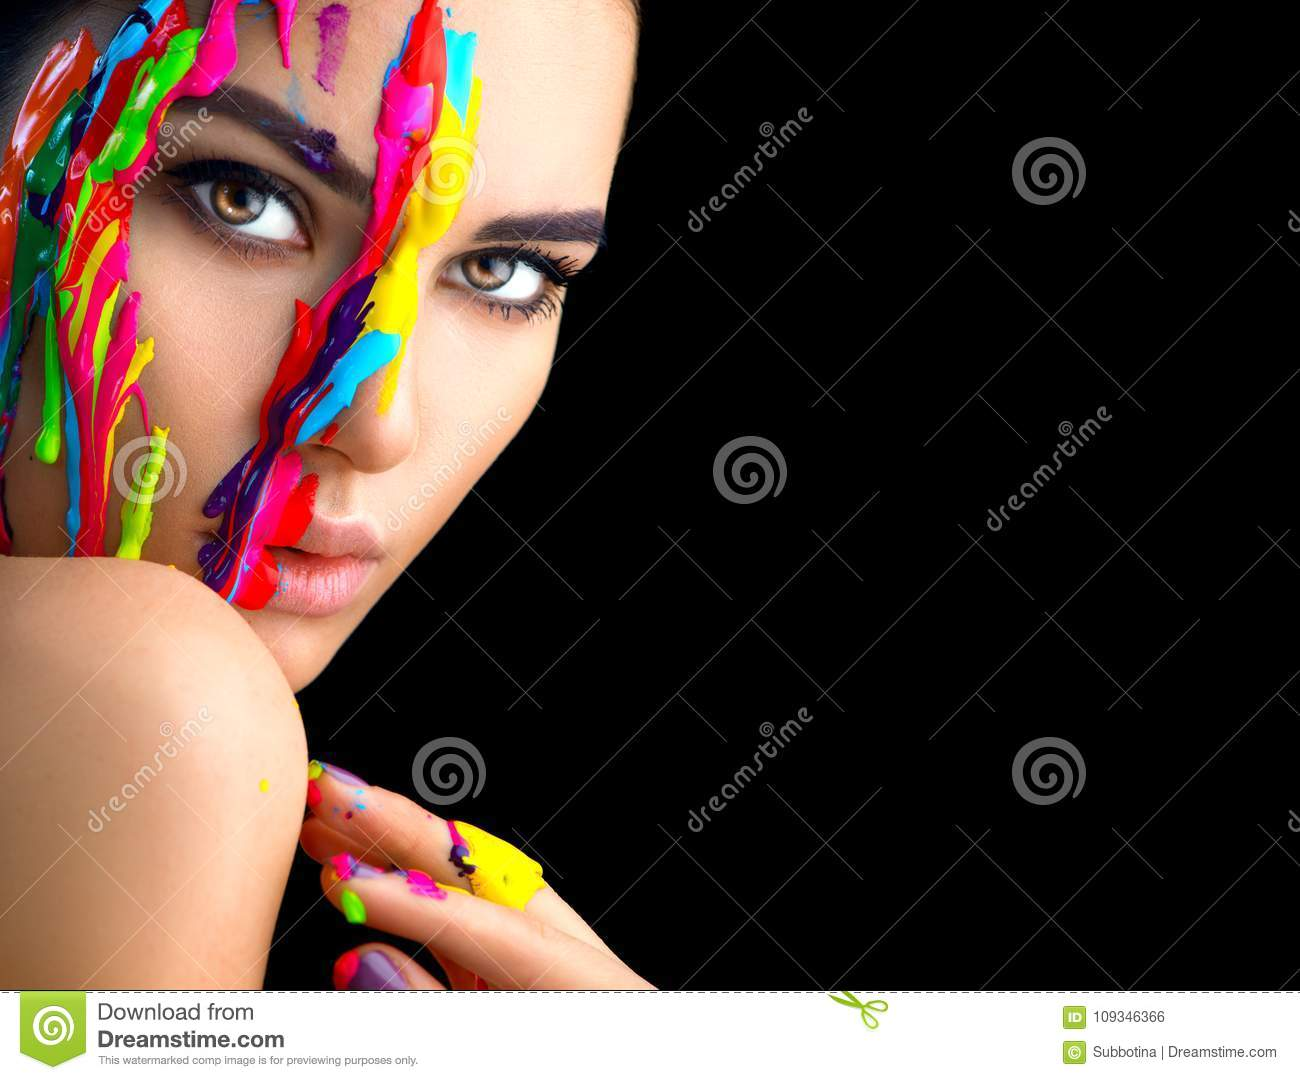 Beauty model girl with colorful paint on her face. Portrait of beautiful woman with flowing liquid paint